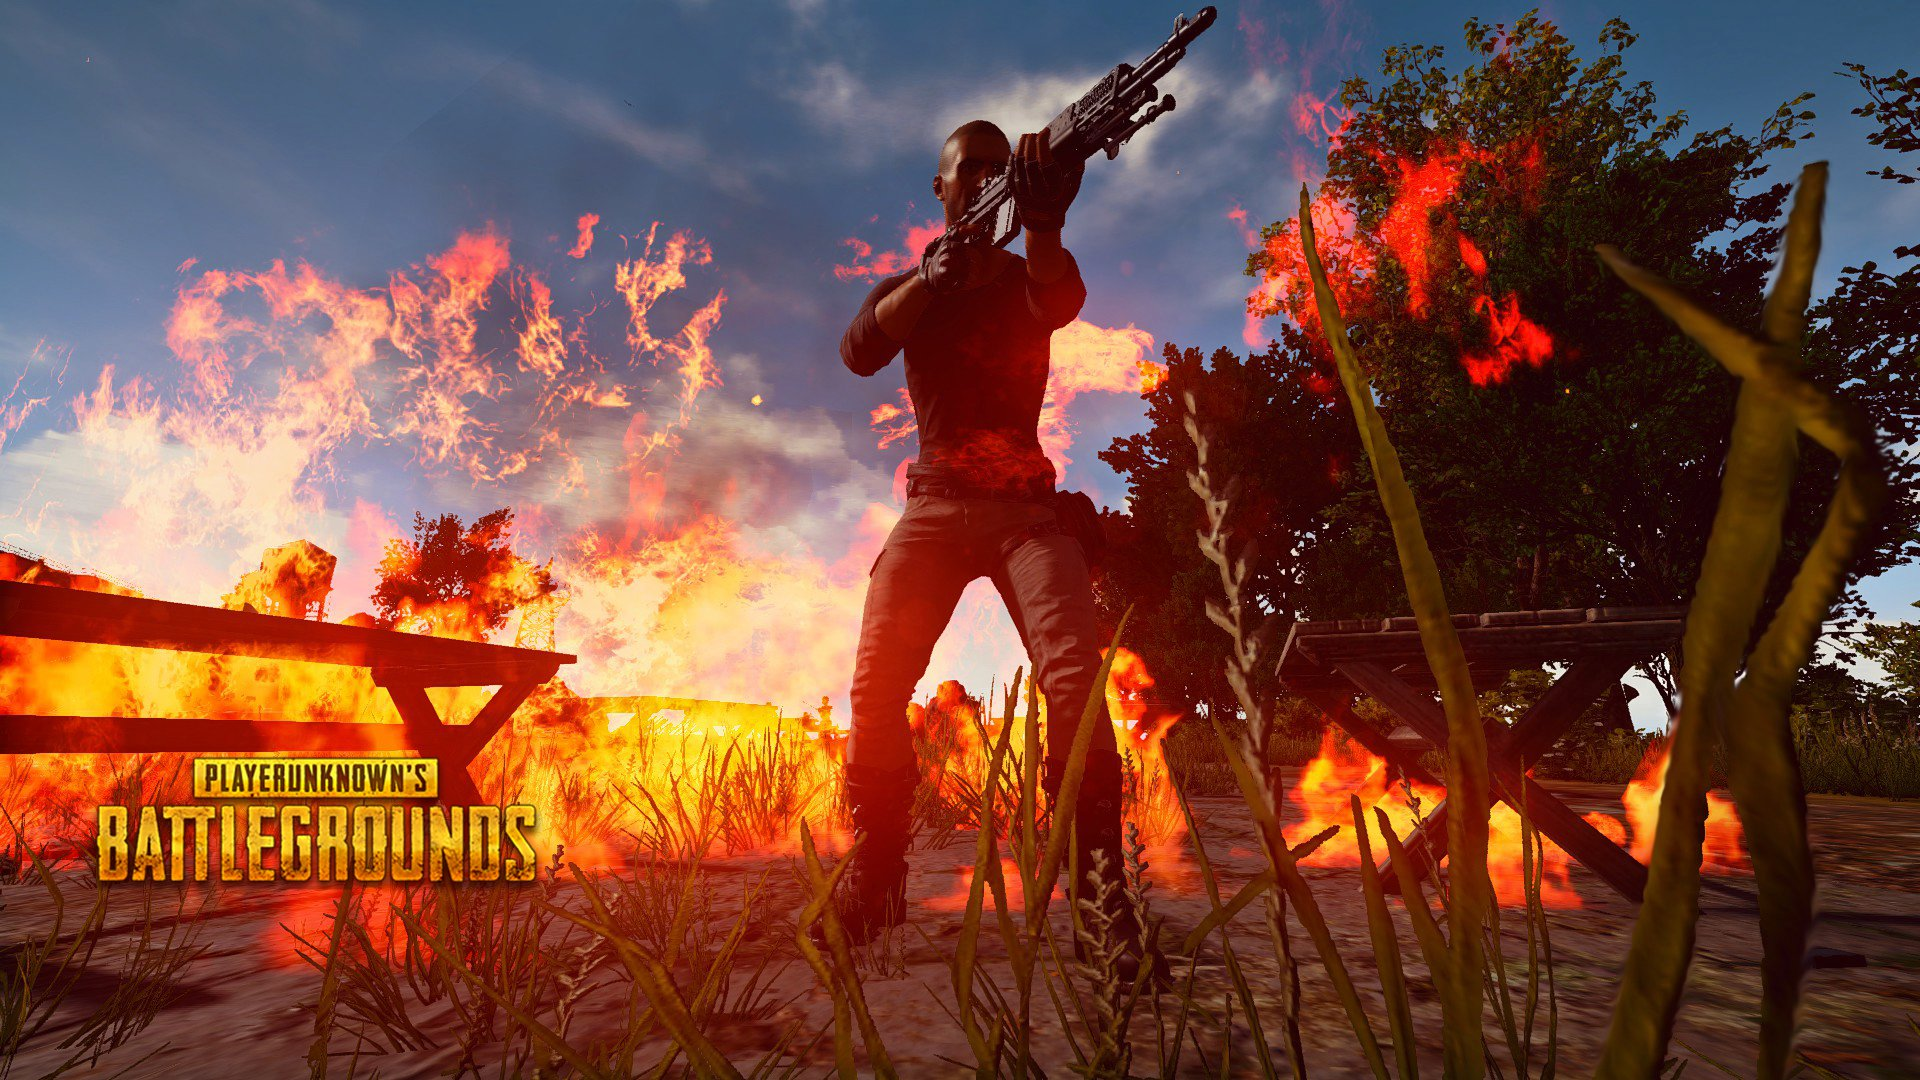 Playerunknown S Battlegrounds Wallpapers: Fire Battleground HD Wallpaper